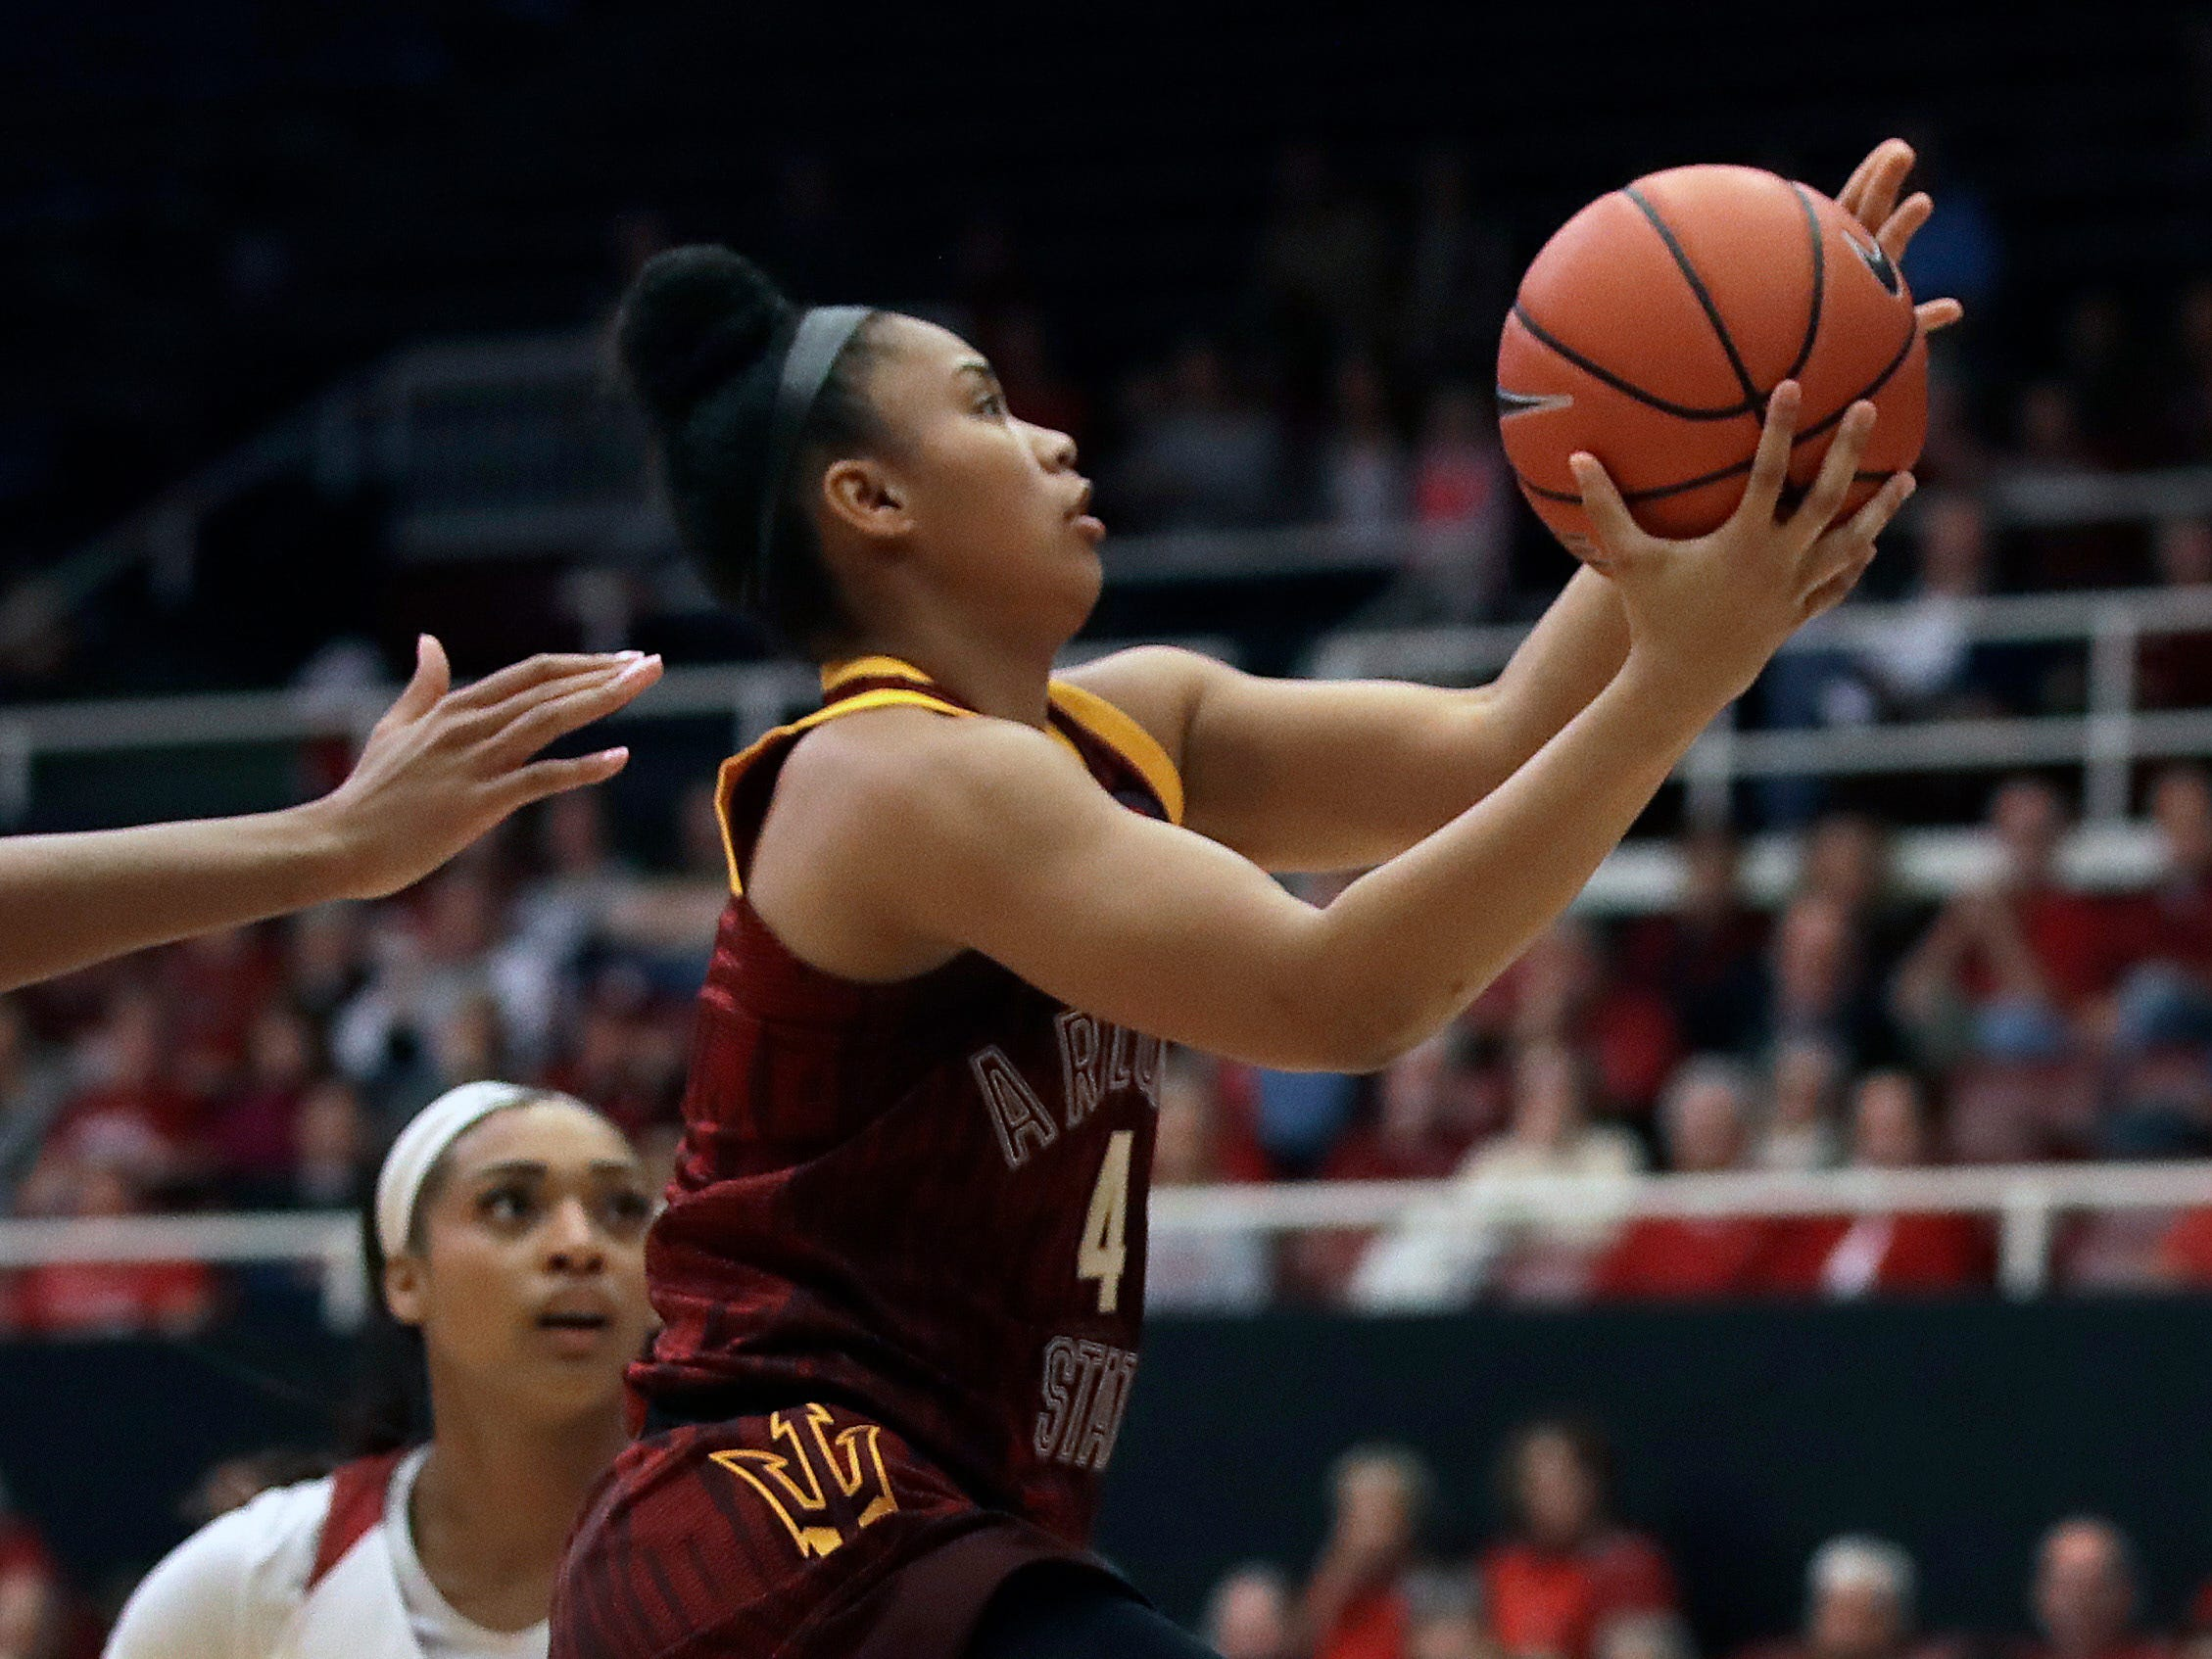 Arizona State's Kiara Russell, right, shoots past Stanford's DiJonai Carrington (21) during the first half of an NCAA college basketball game Sunday, Feb. 24, 2019, in Stanford, Calif.